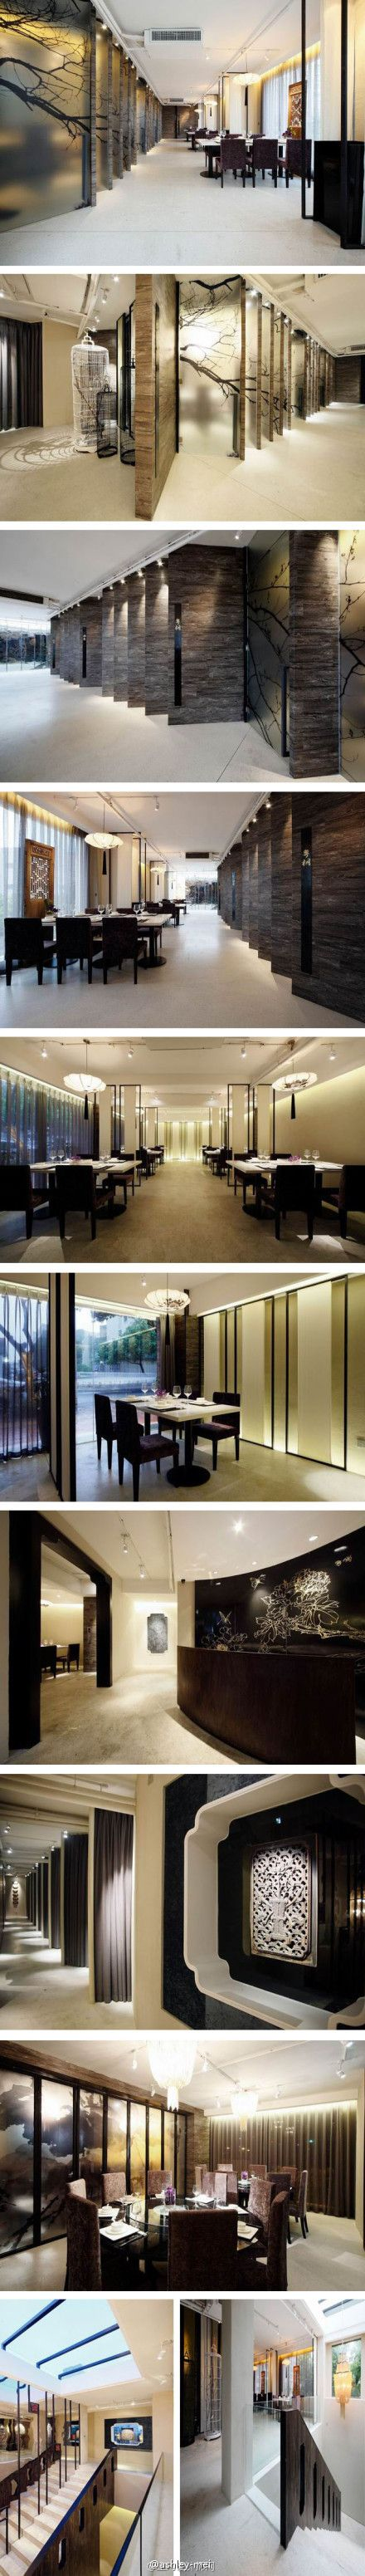 Great idea to get natural light into interior spaces. I like the tree graphics on the opaque glass situated diagonally. New Chinese style